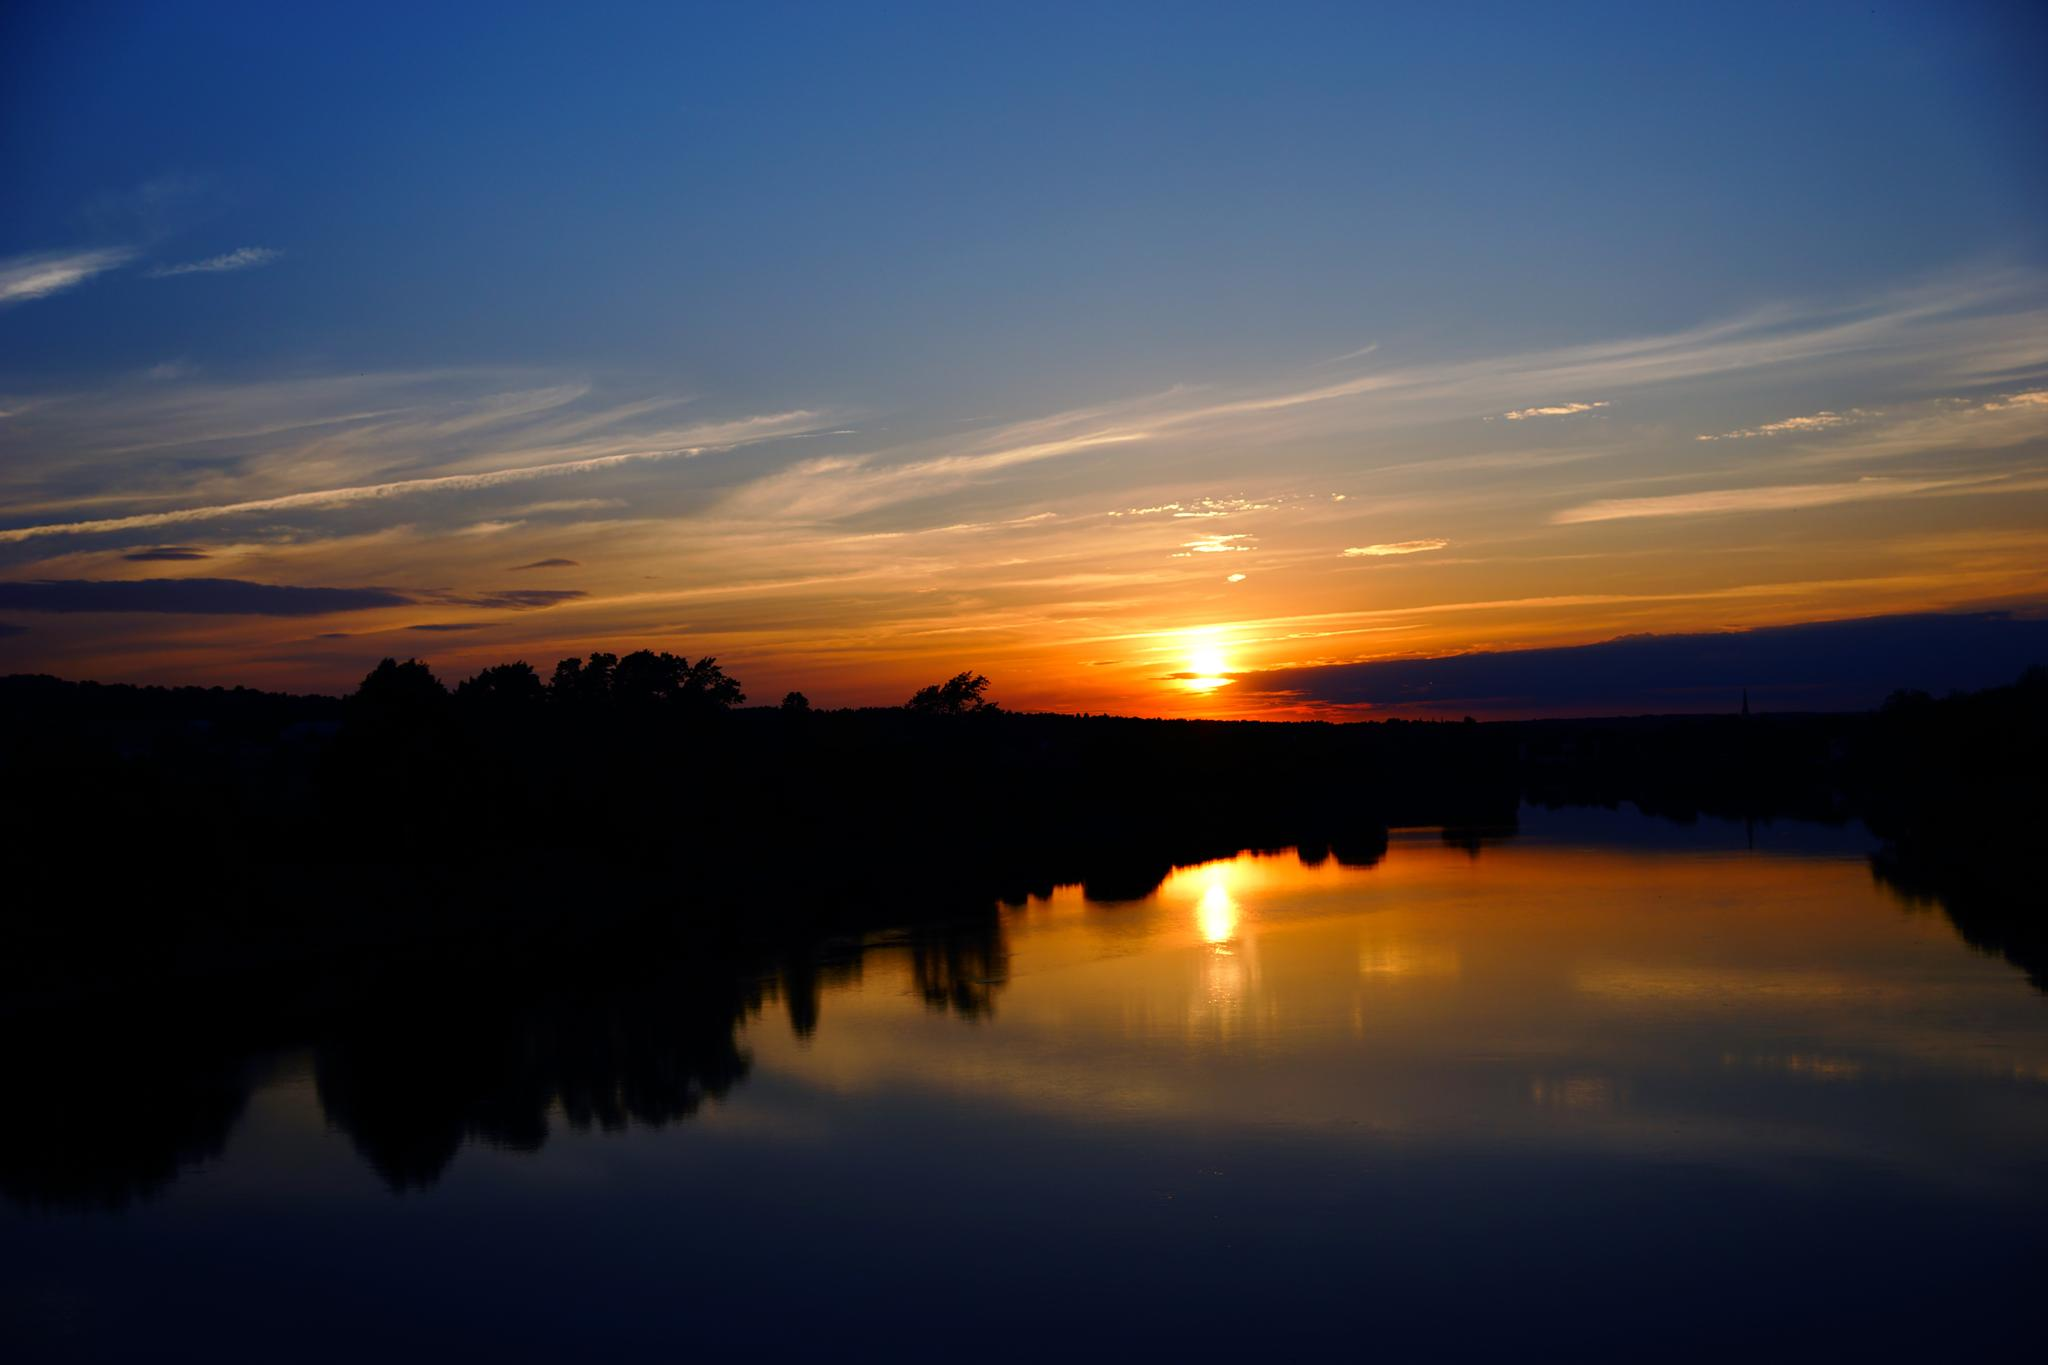 Summer sunset on the river by sylviecorriveau